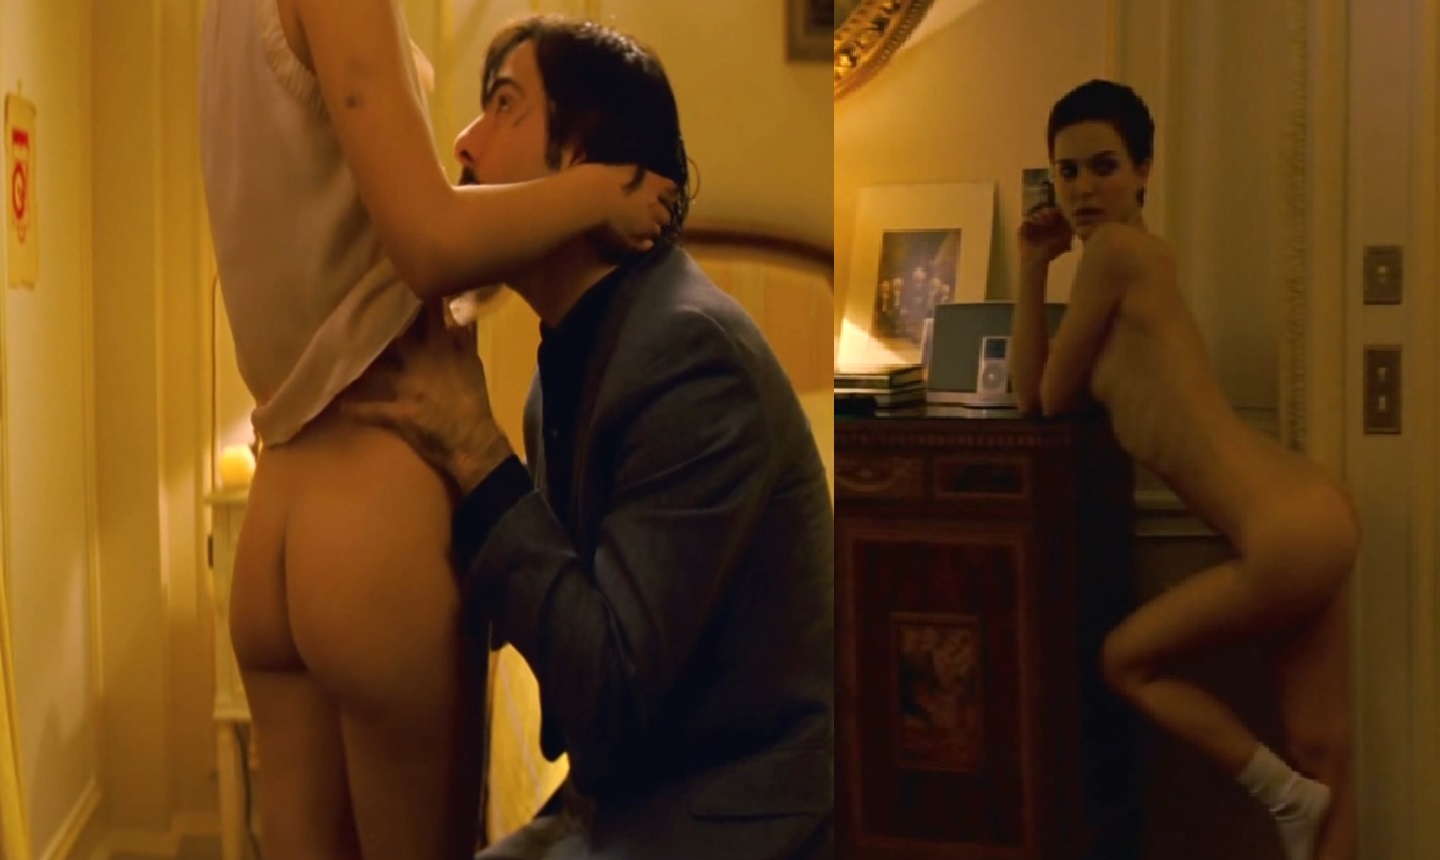 natalie portman closer showing pussy